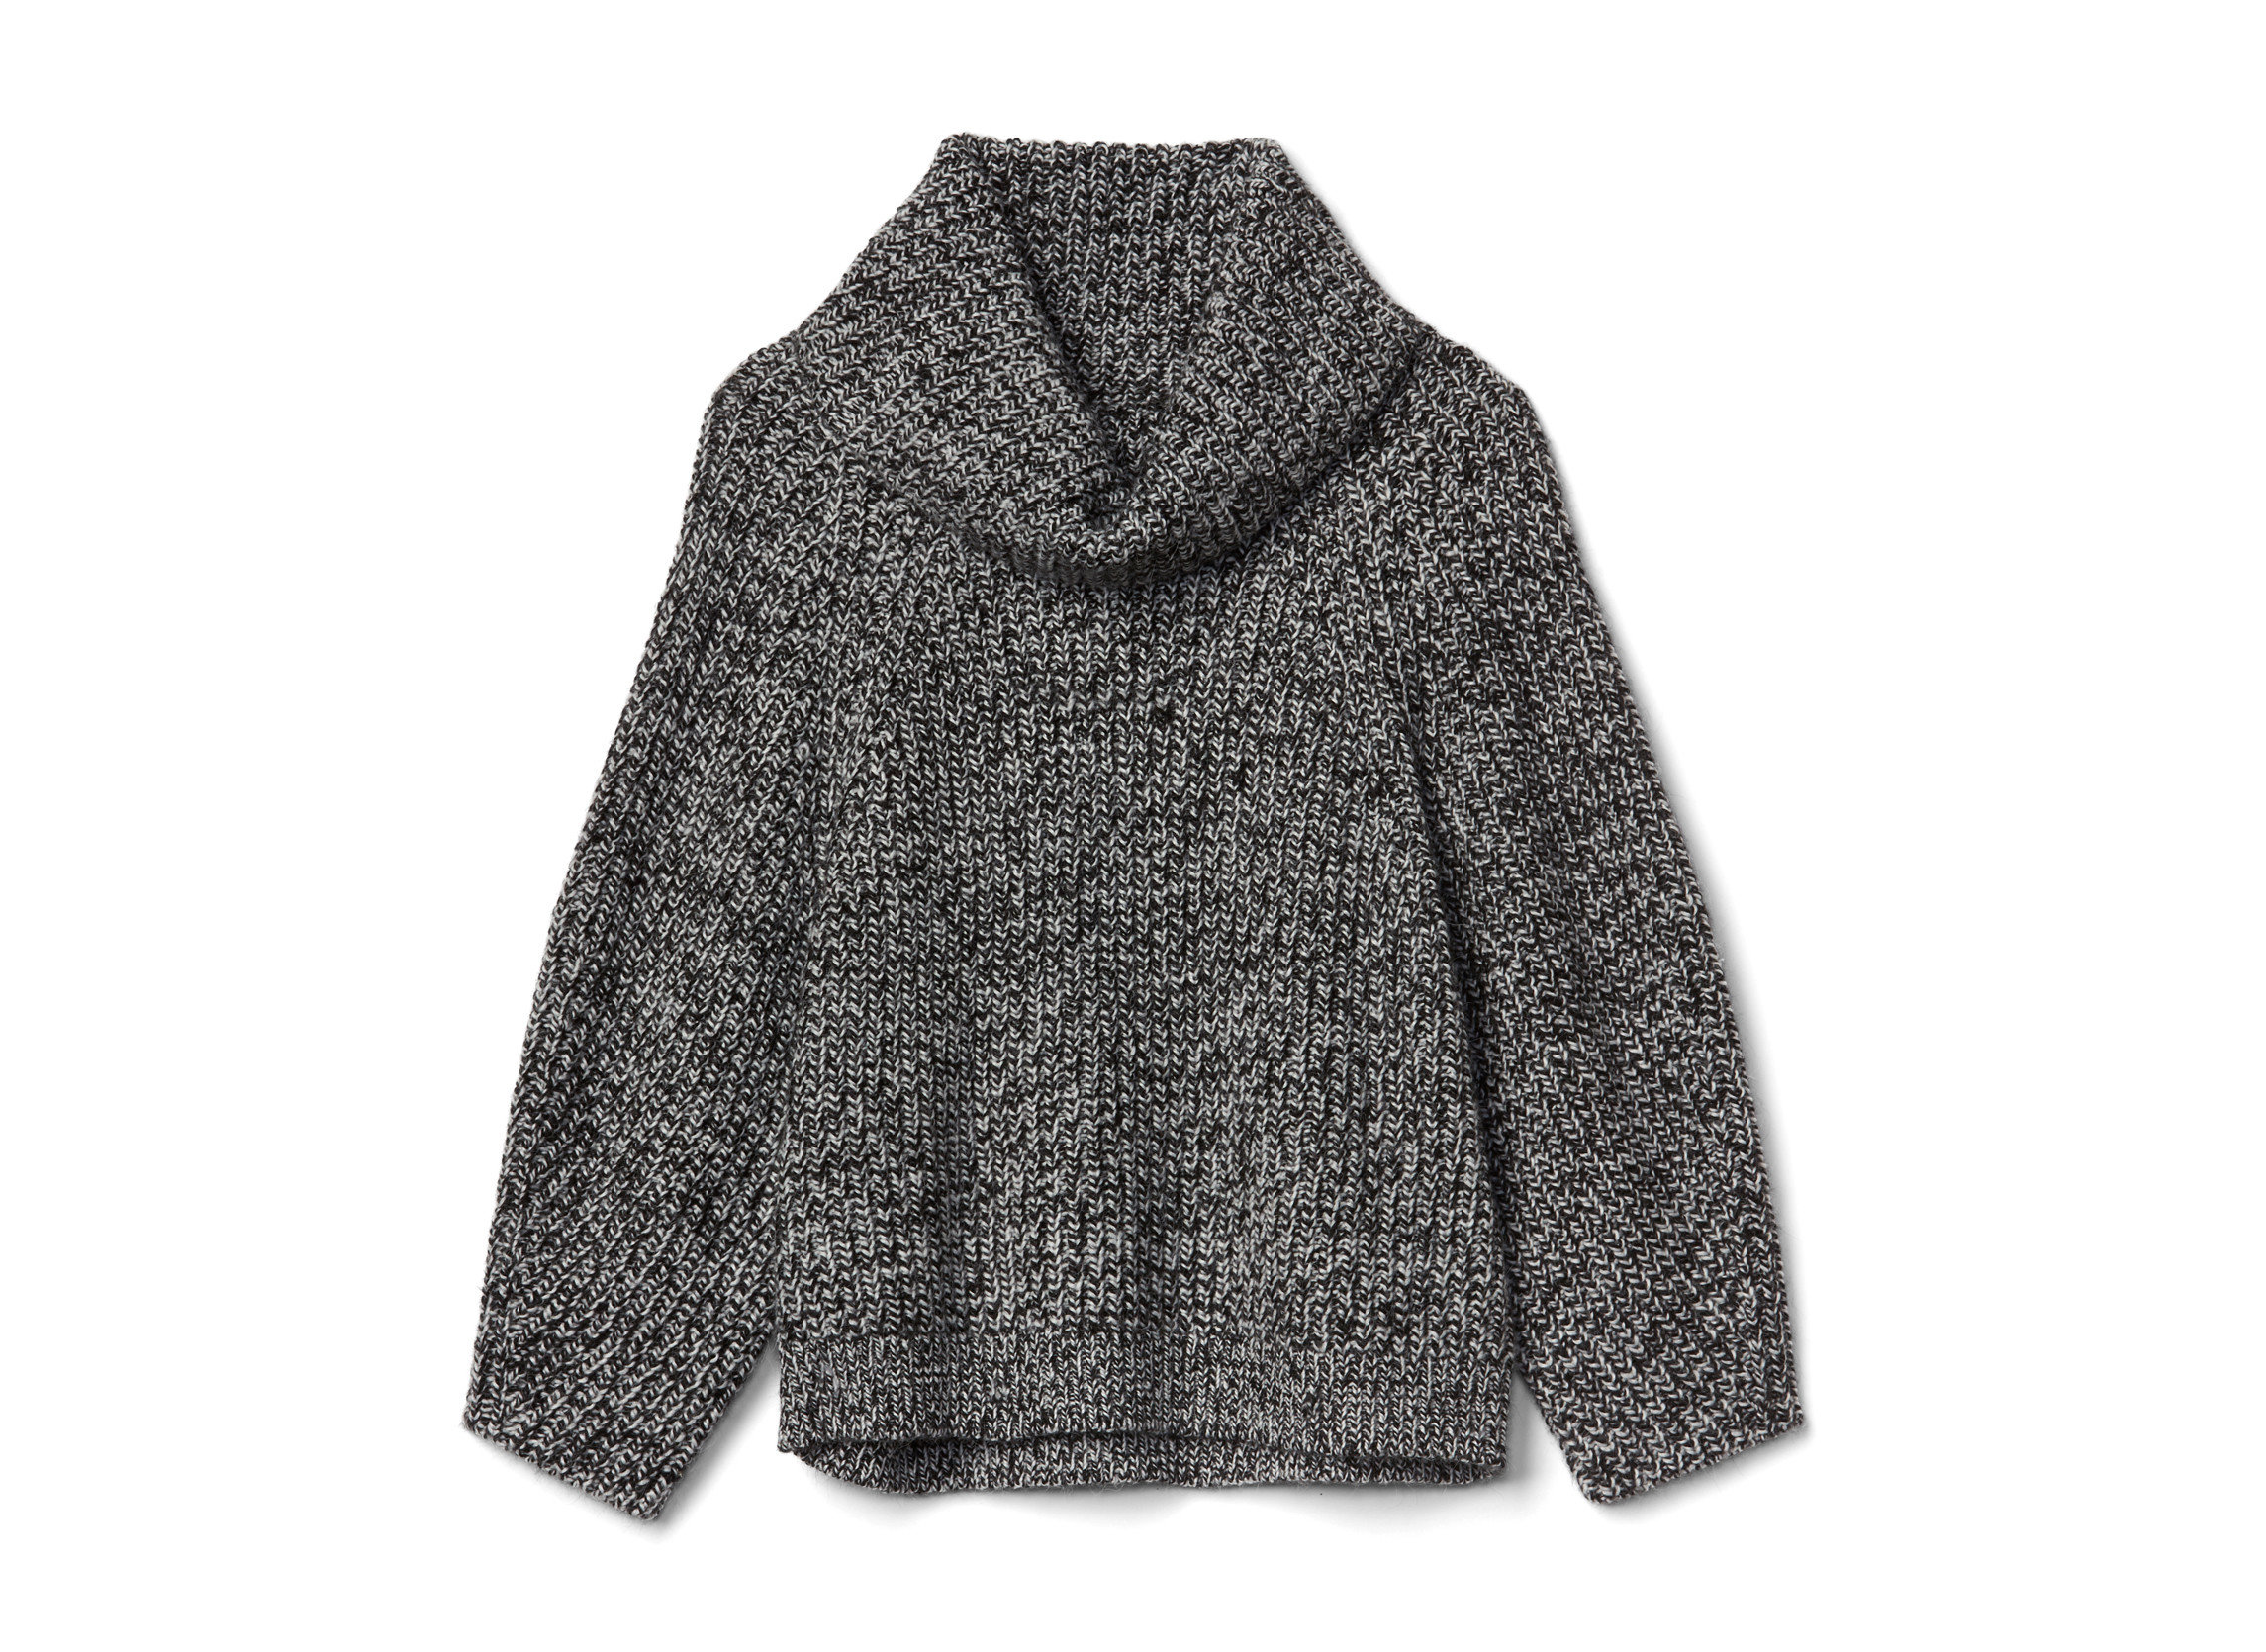 Gift Guides Travel Shop clothing woolen outerwear jacket sweater cardigan sleeve neck product pattern